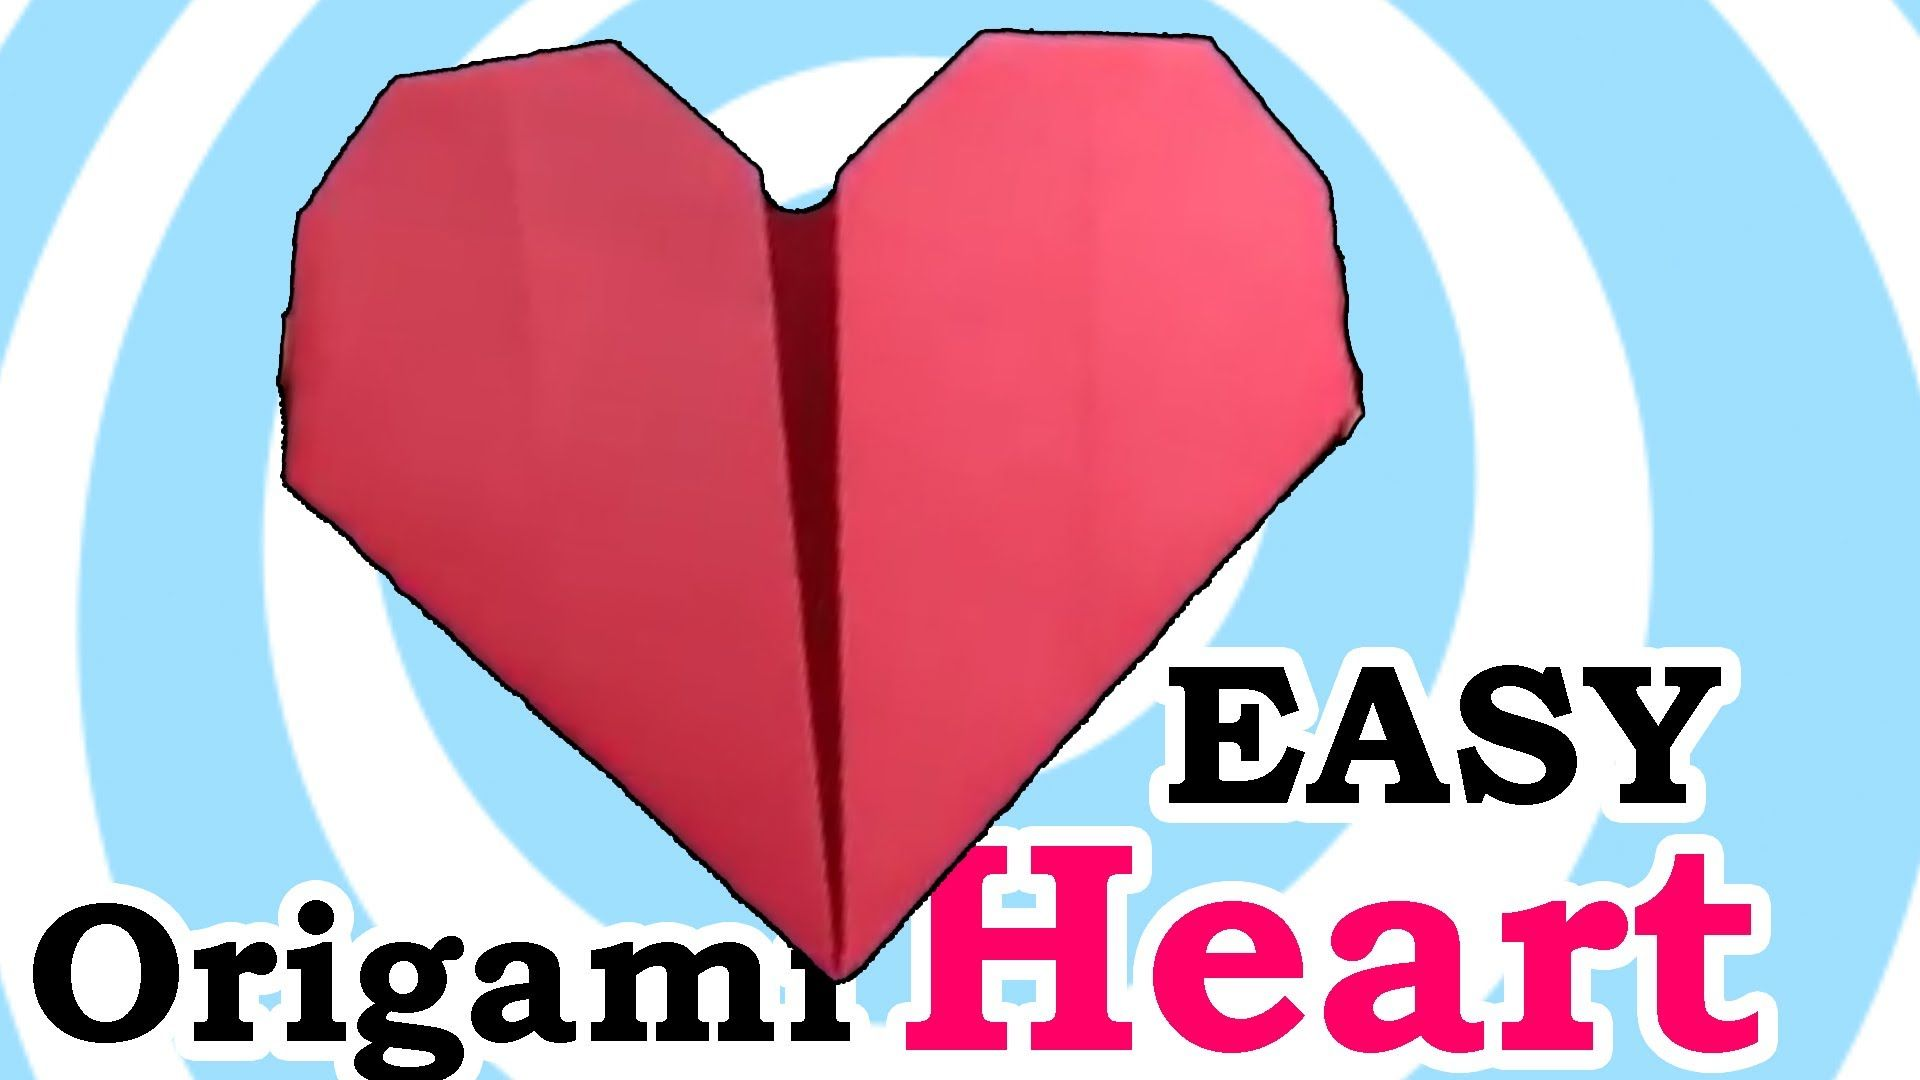 Easy origami heart valentines day origami instructions or ideas how to make easy origami heart video instruction you can fold the origami heart easy you need only red squared paperd 2 minutes free time jeuxipadfo Image collections